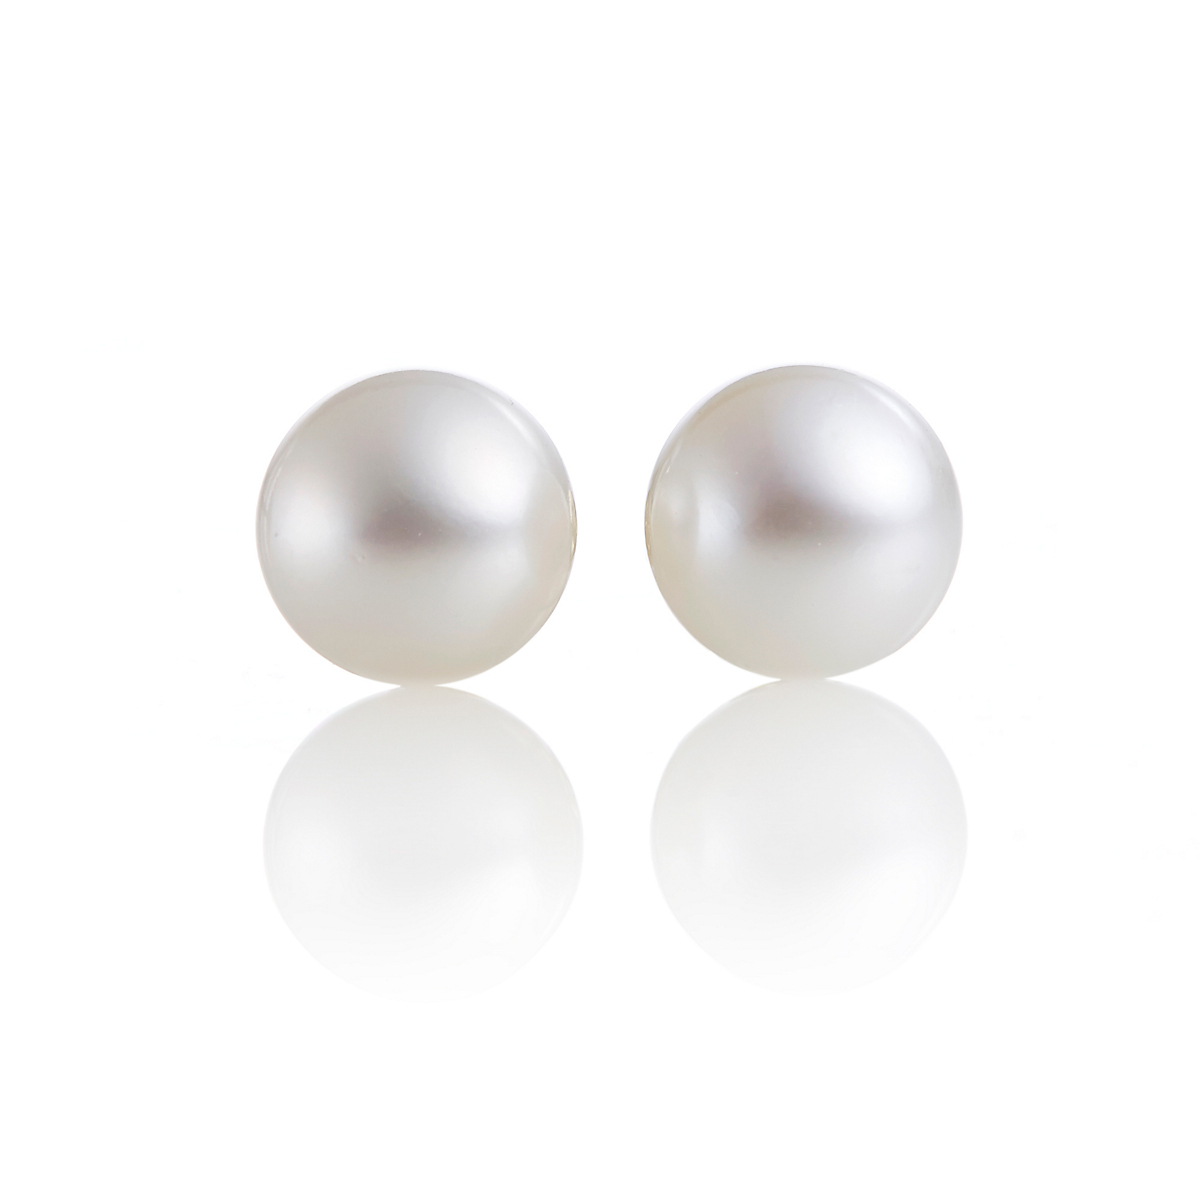 Gump's Freshwater 9.5mm Pearl Stud Earrings